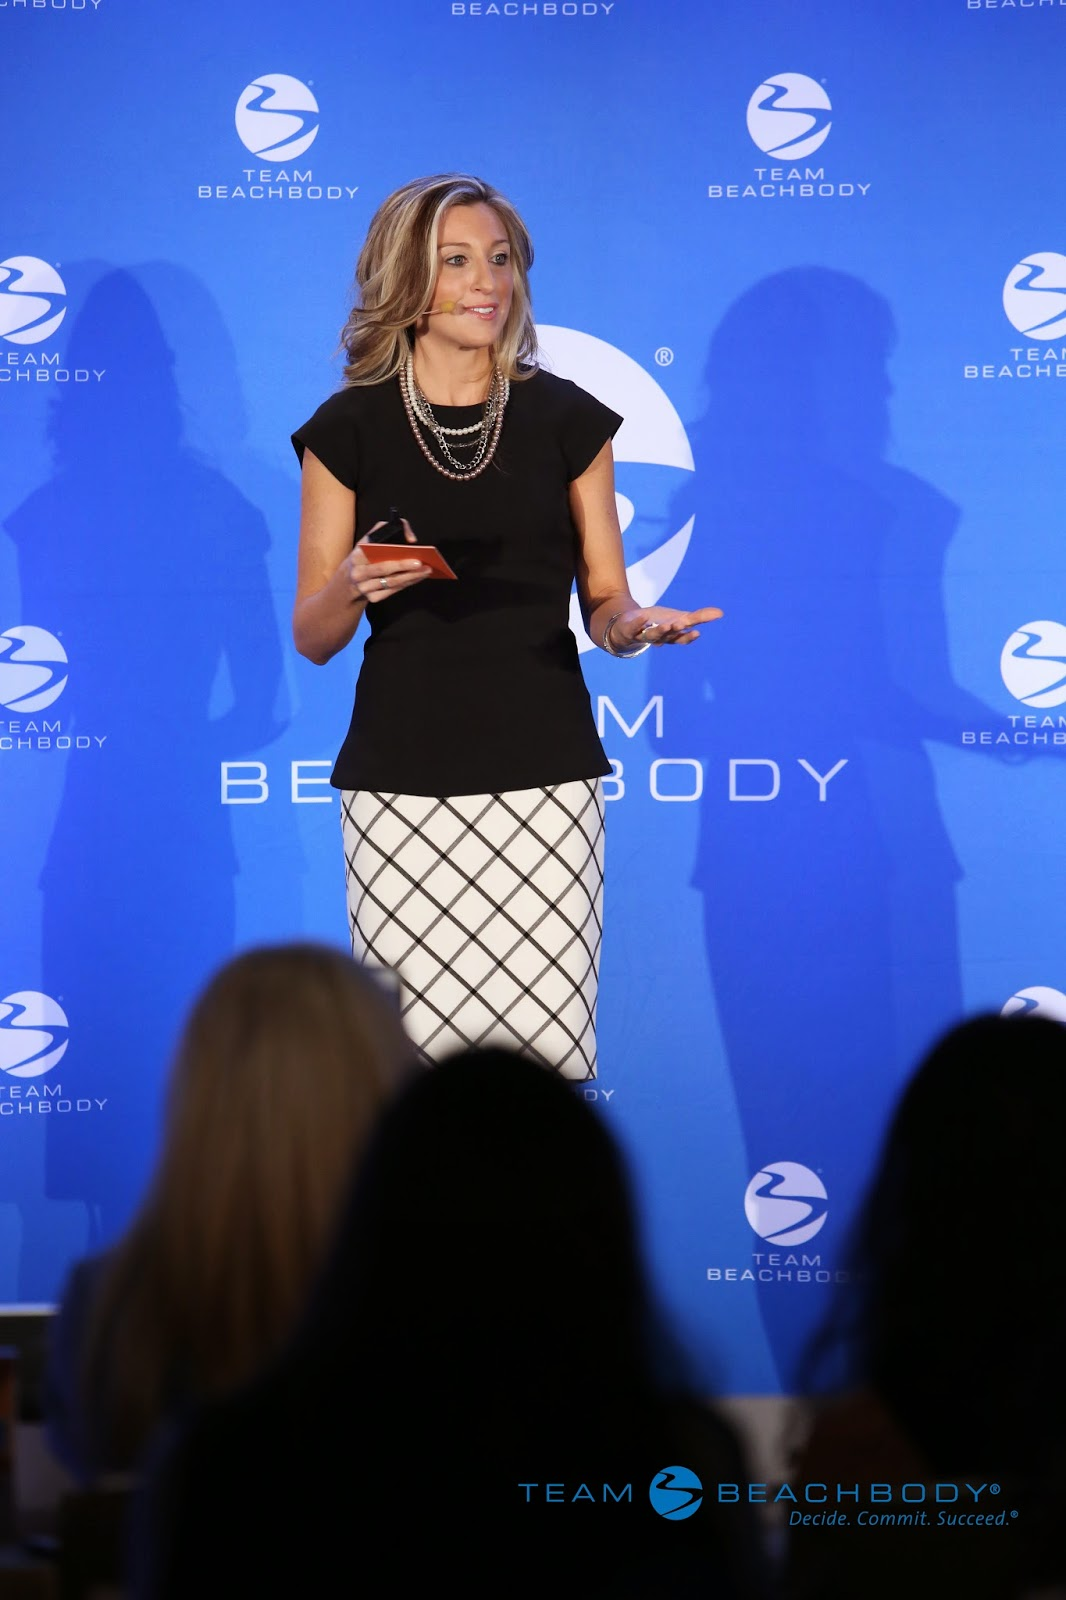 New Leader Conference, Team Beachbody, Autumn Calabrese, LA, Carl Daikeler, Top Coach, Training, How to Find coaches, Melanie Mitro